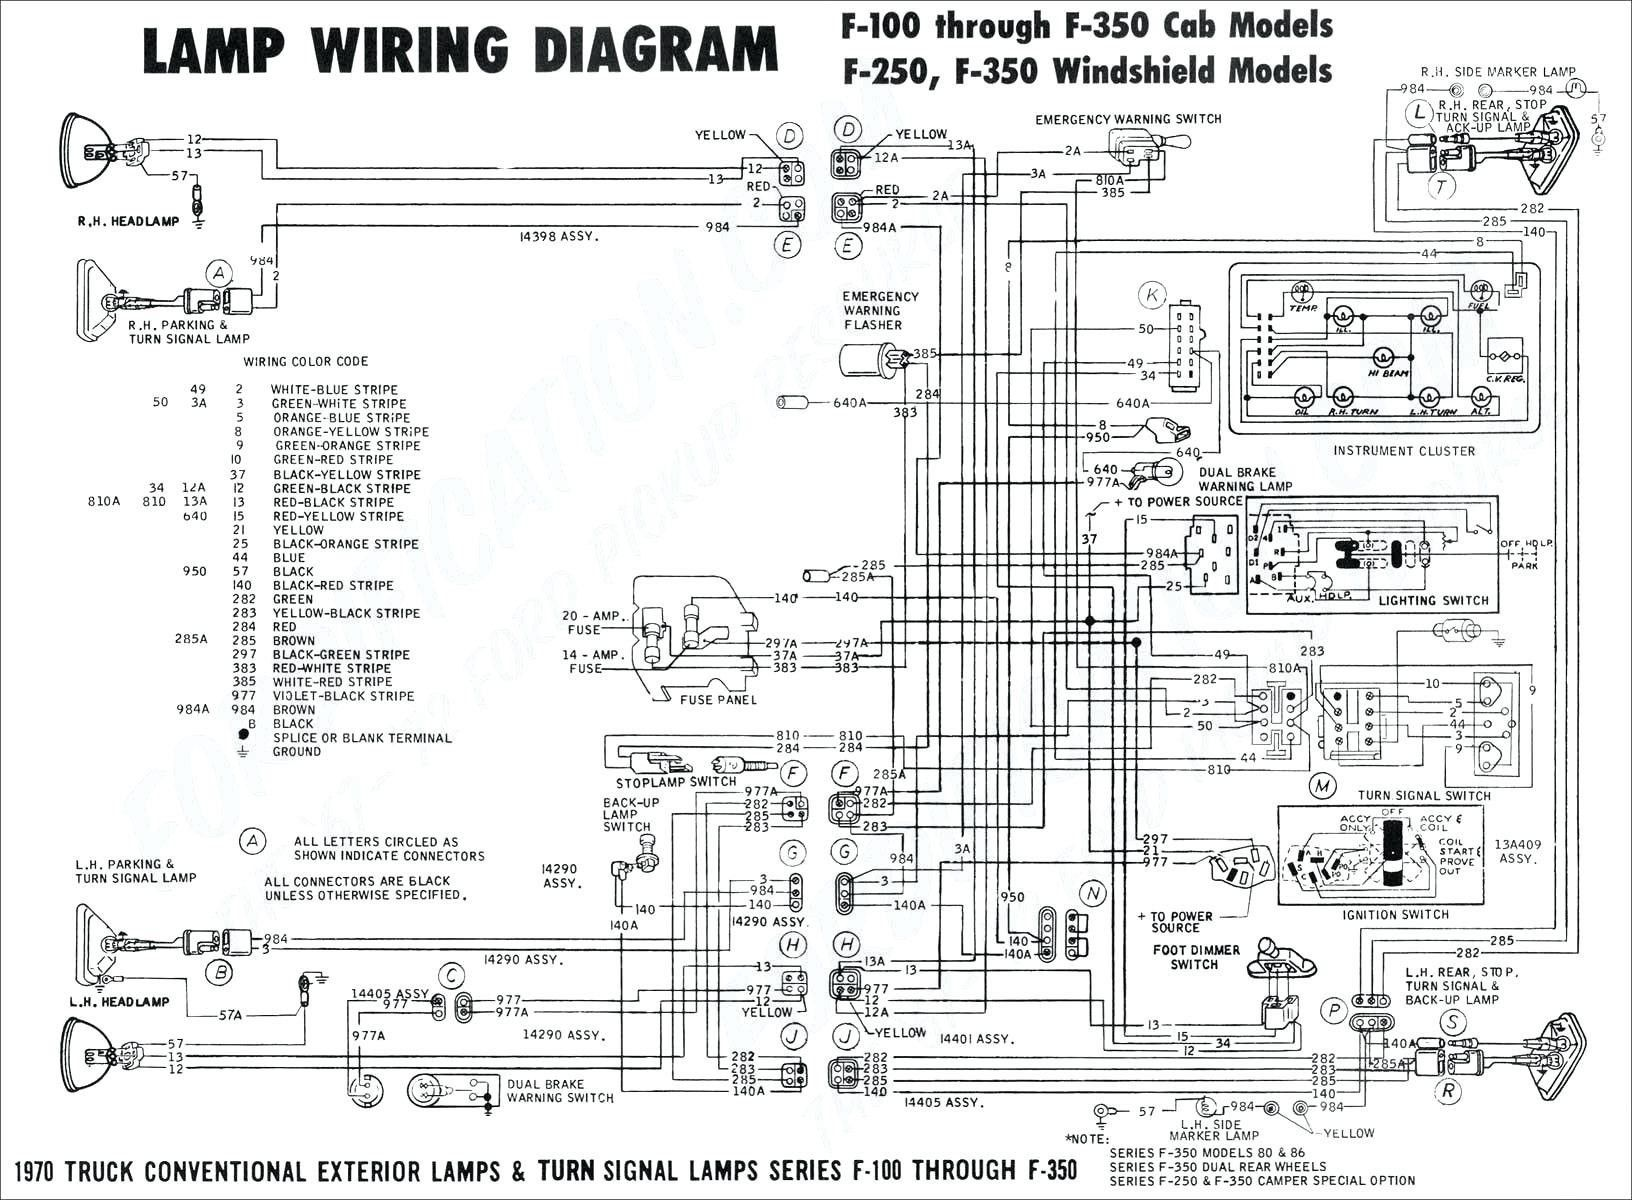 Wiring Diagram For 2000 Ford F250 Taillights Trailer Wiring Diagram Electrical Wiring Diagram Circuit Diagram